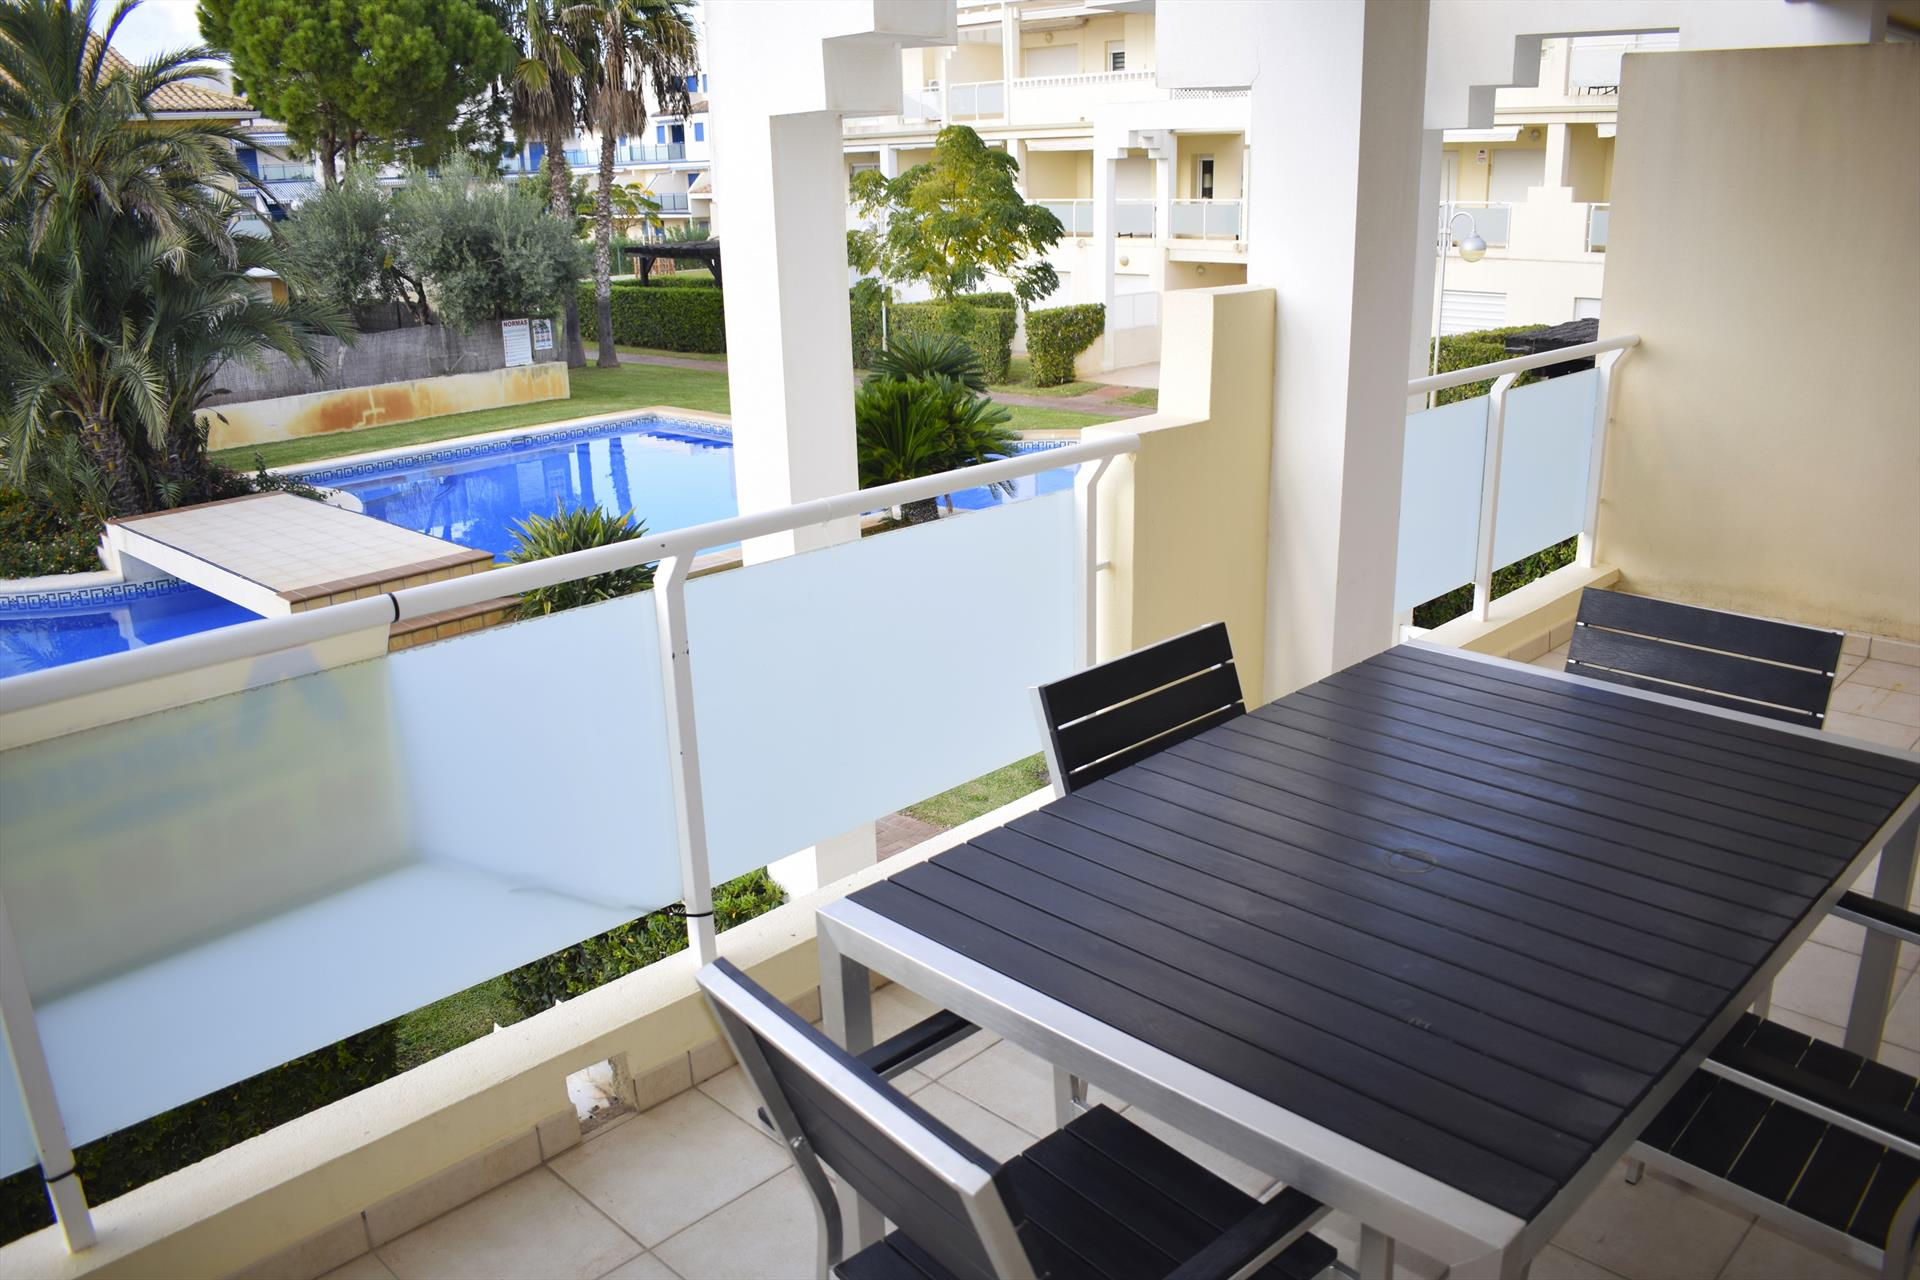 DUP3027 Vora Golf 3 Playa Rabdells, Large and luxury apartment  with communal pool in Oliva, on the Costa Blanca, Spain for 6 persons.....